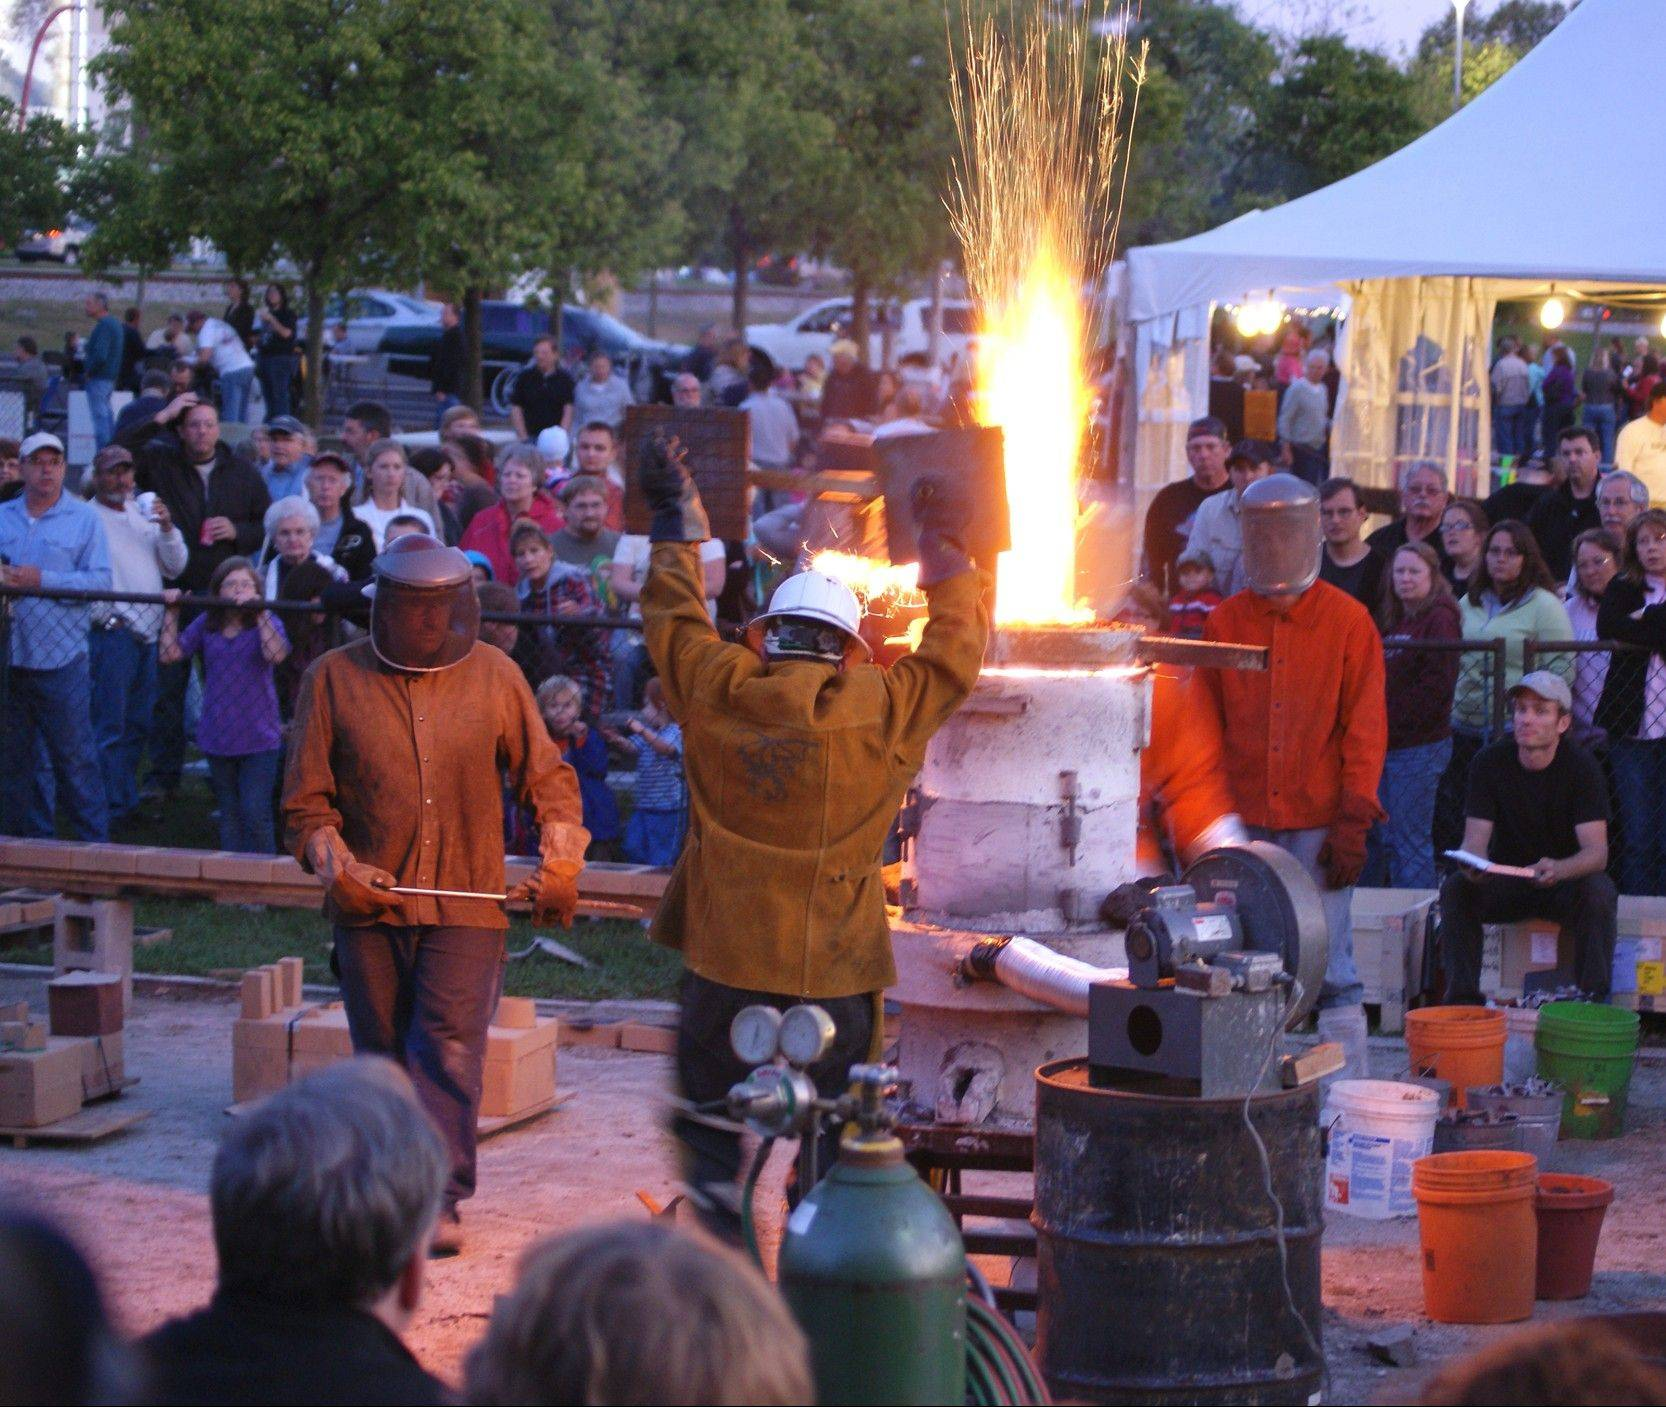 Get in on Iron Pour and Glass Forming Workshops at the ArtFEST in Columbus, Ind.